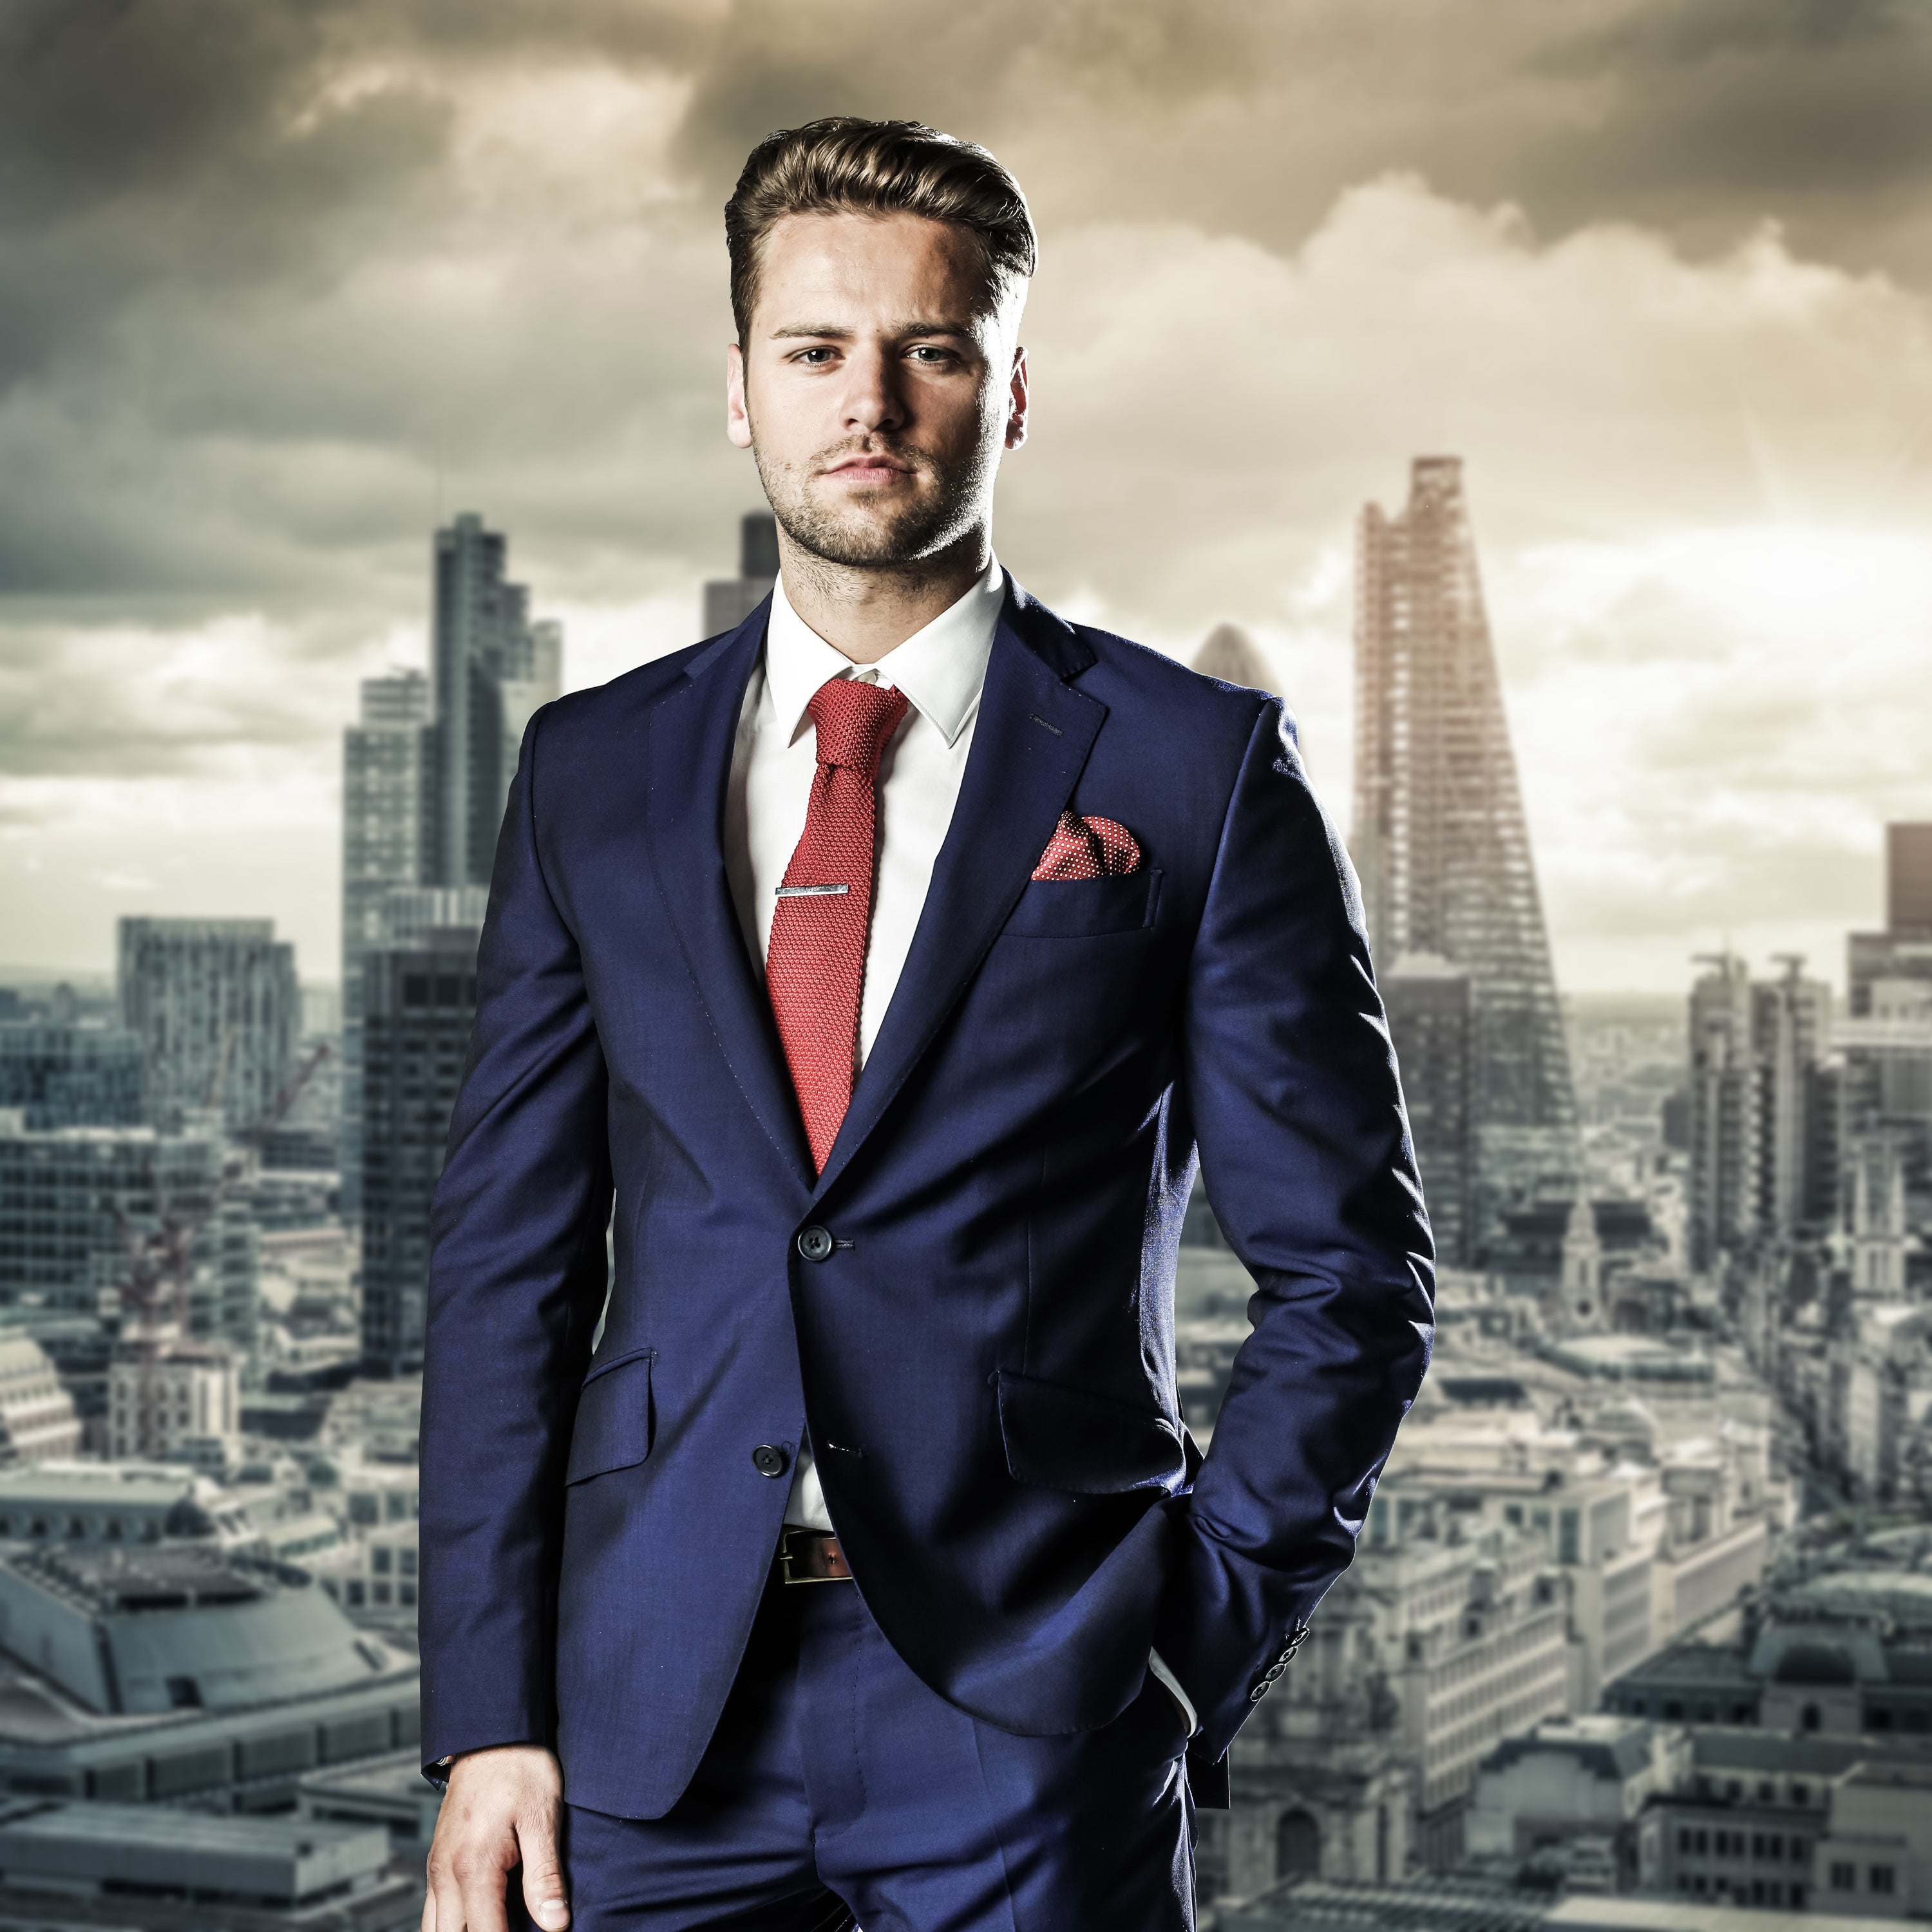 The apprentice contestants dating quotes 8